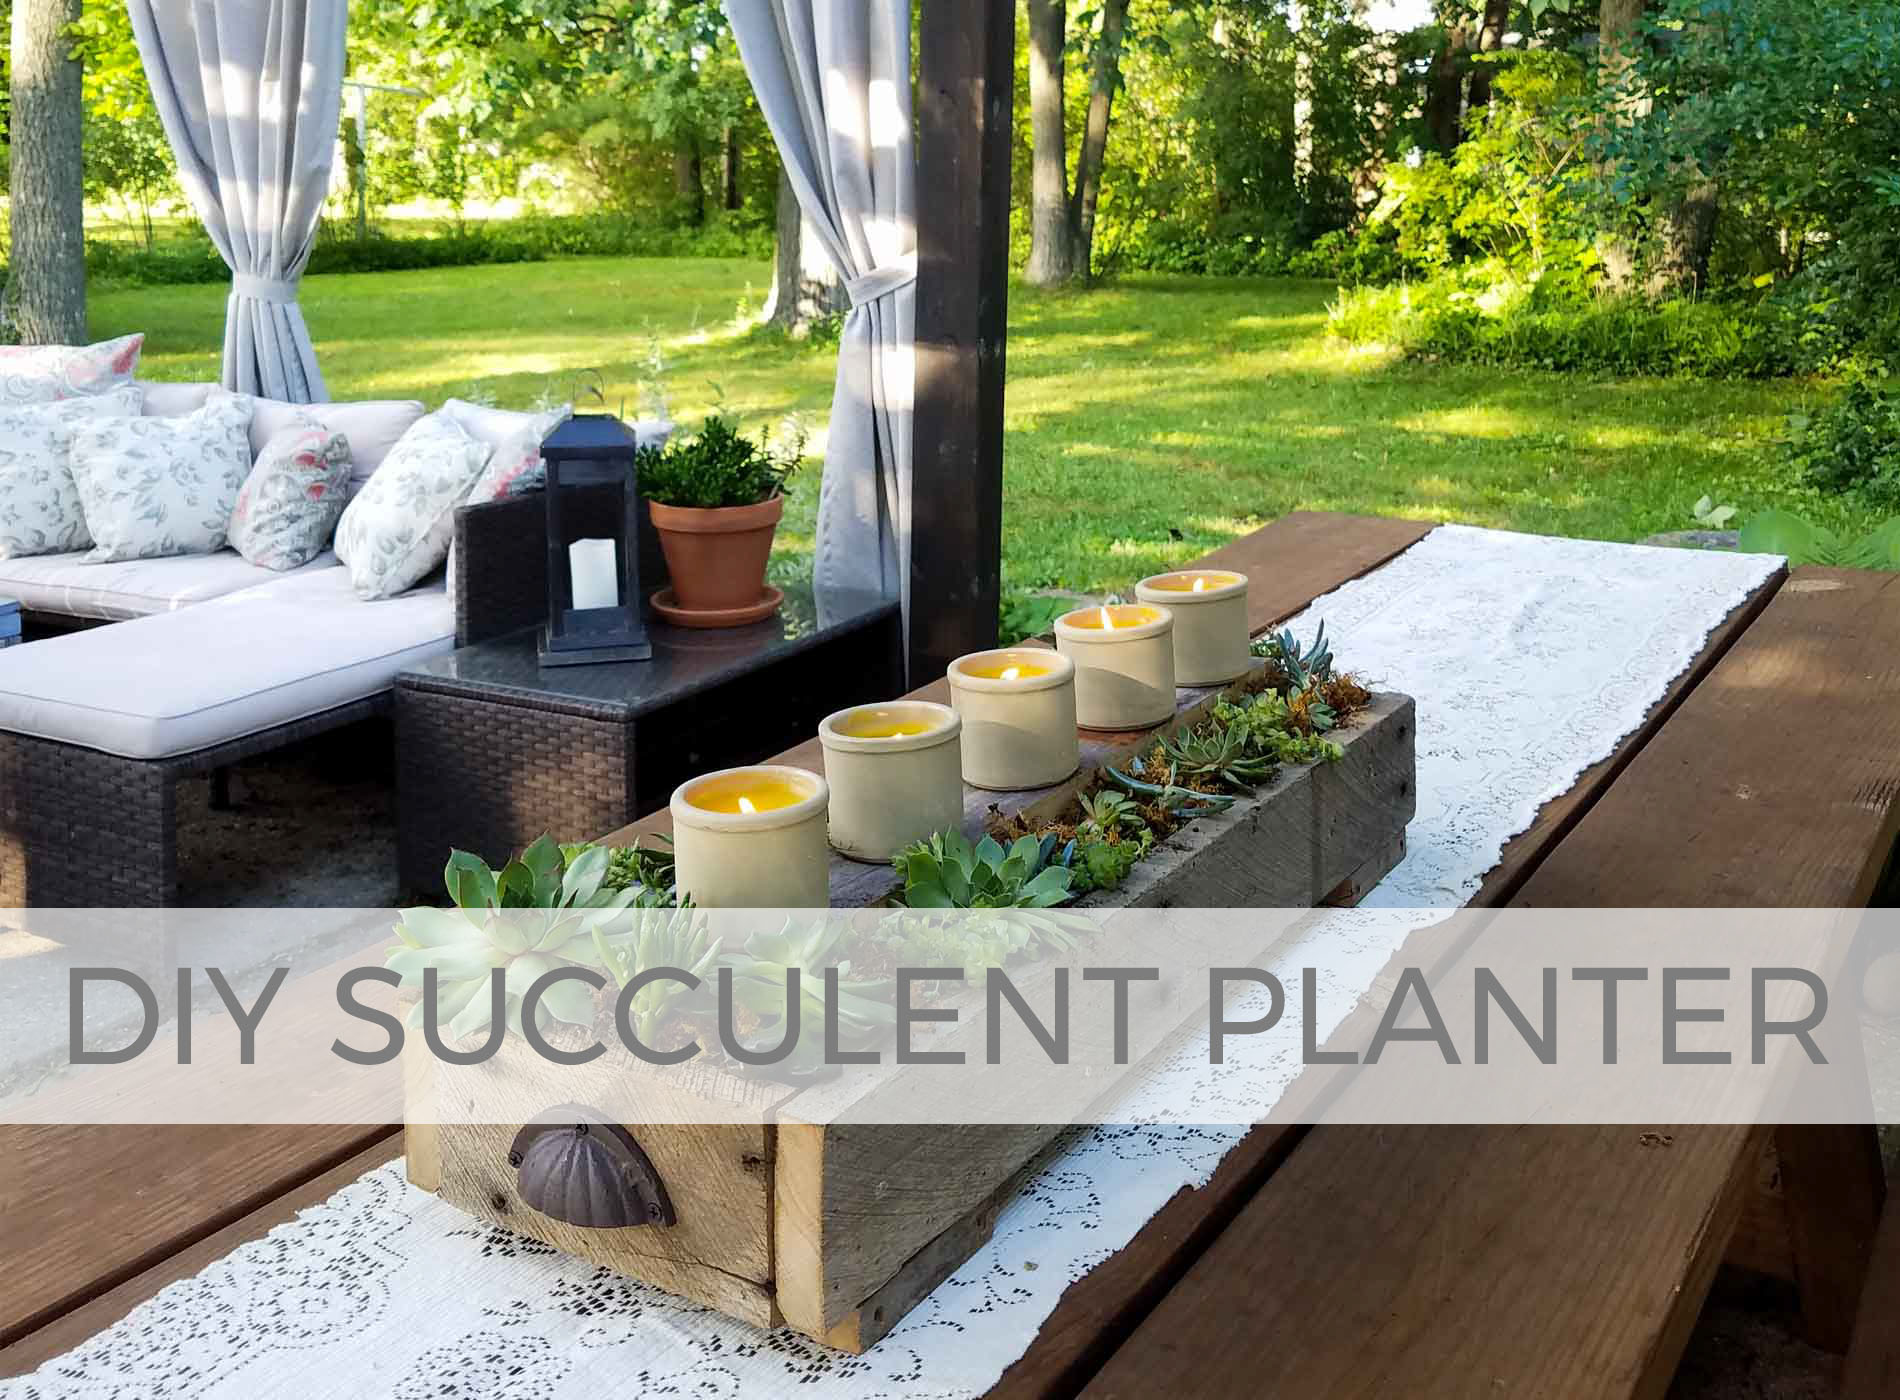 Build this DIY succulent planters with plans by Larissa of Prodigal Pieces | prodigalpieces.com #prodigalpieces